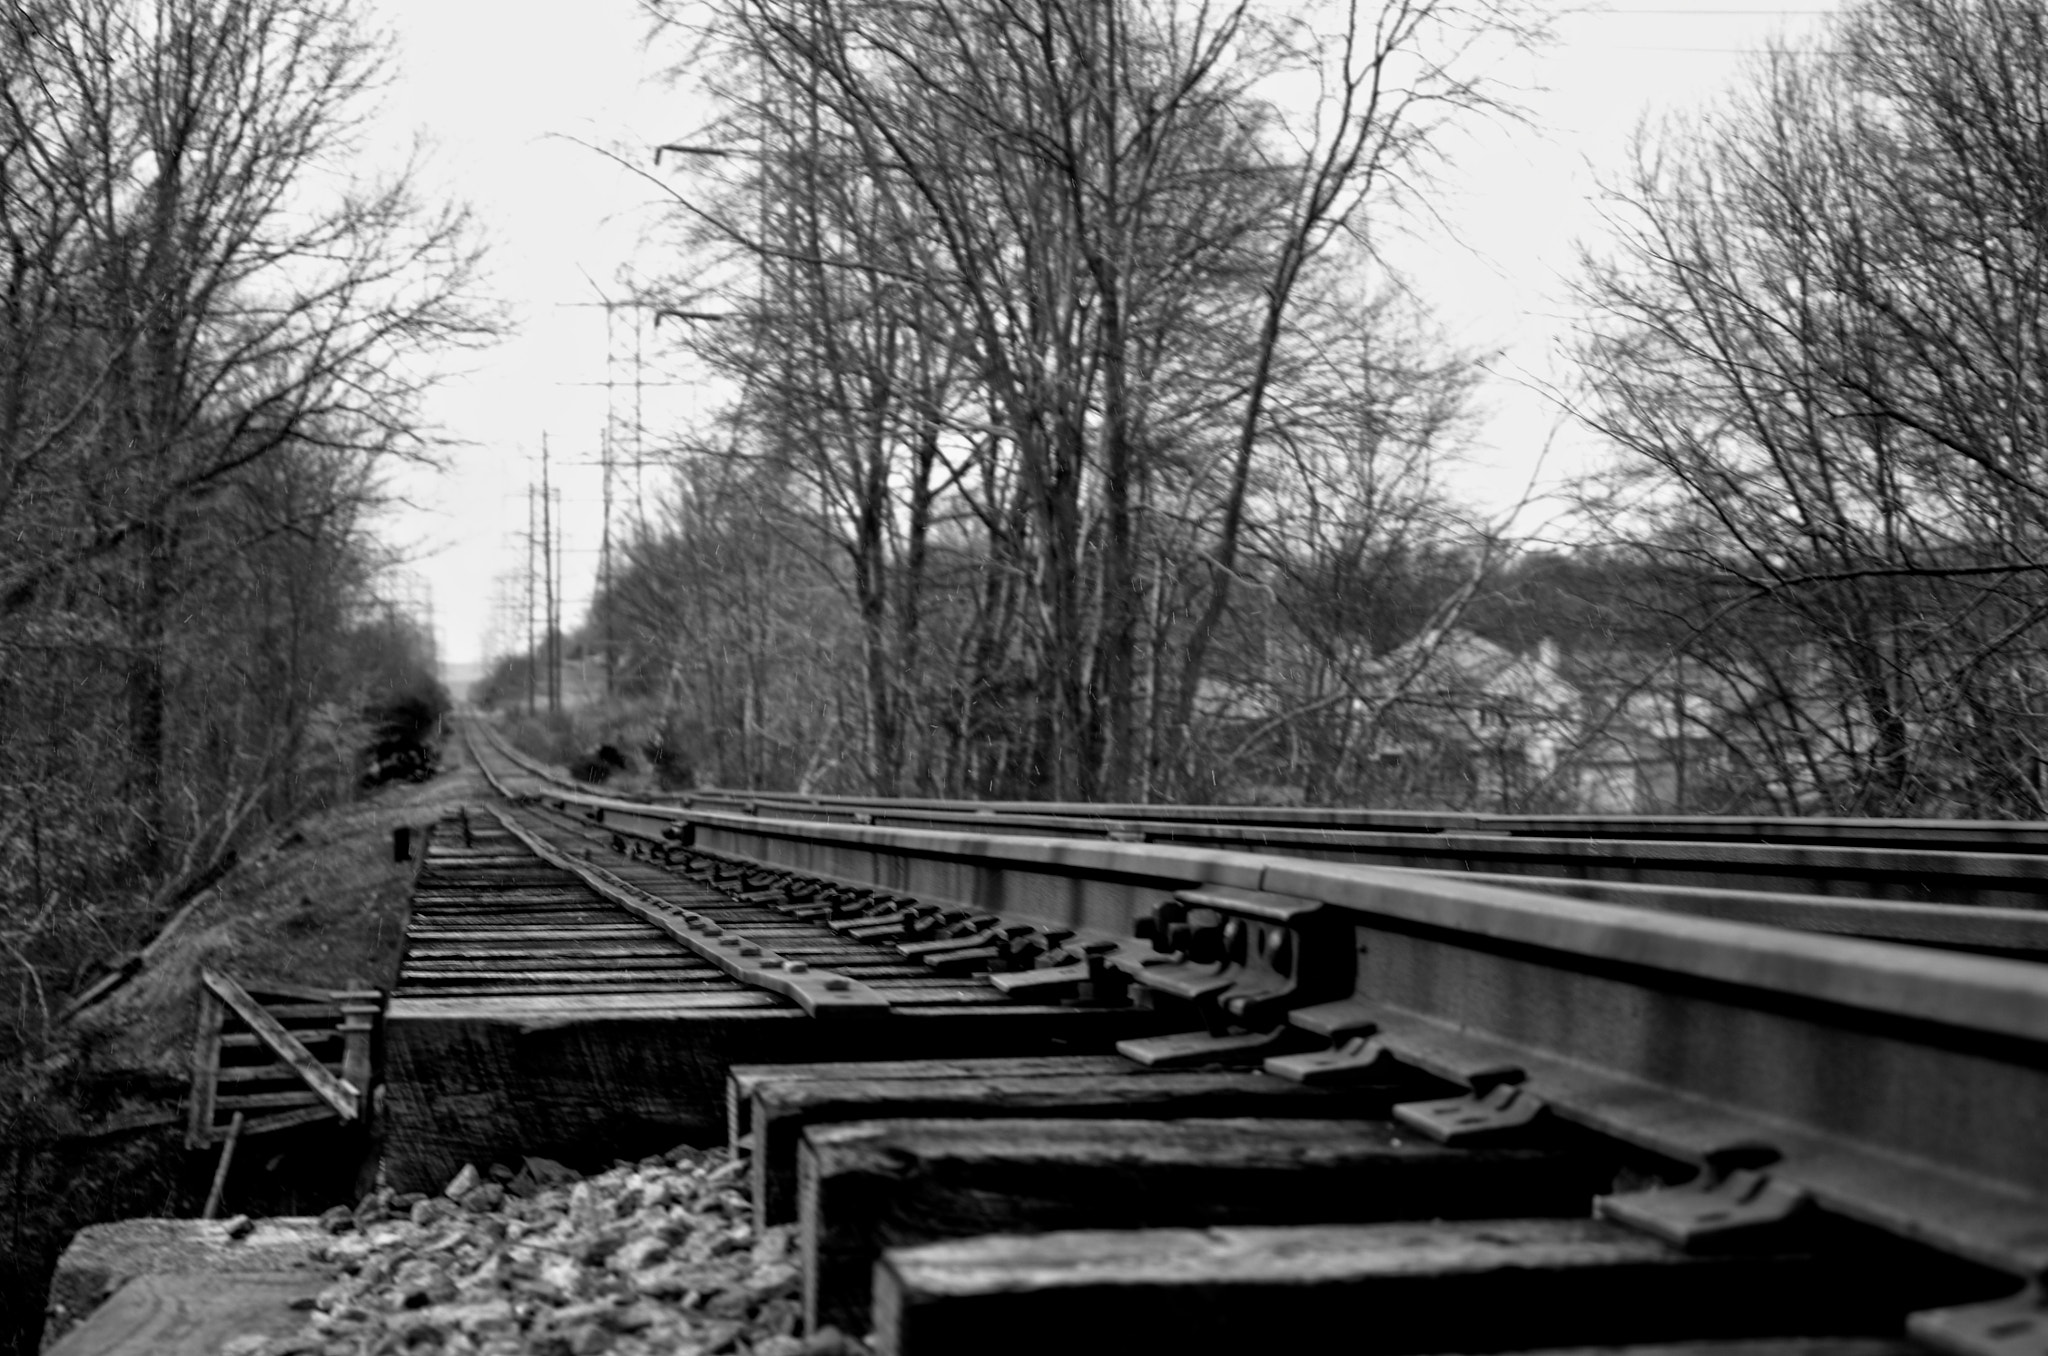 Photograph Abandoned Rails by Sam Commarato on 500px